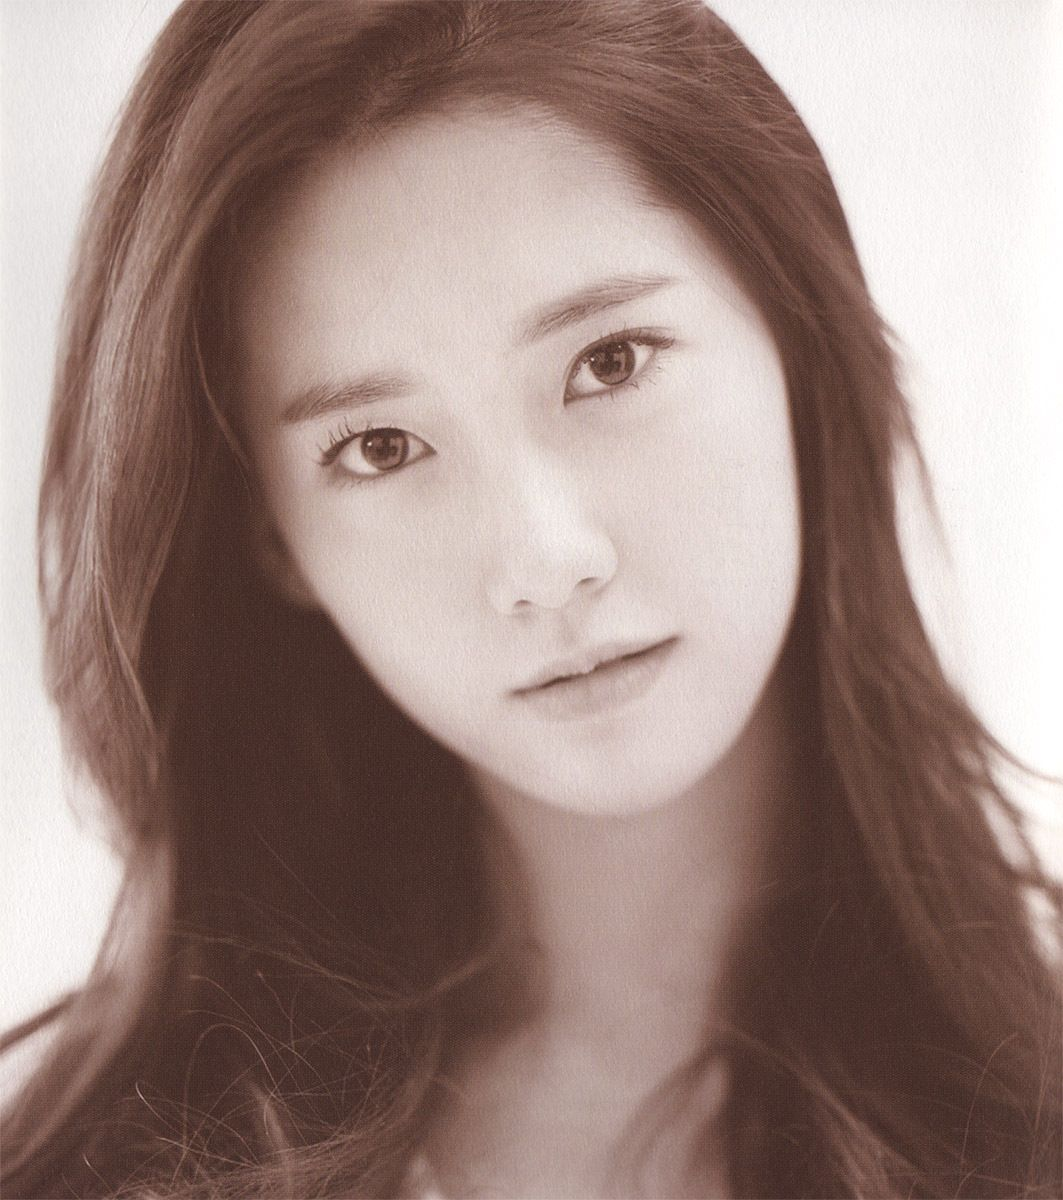 Yoona Snsd Sex Photo